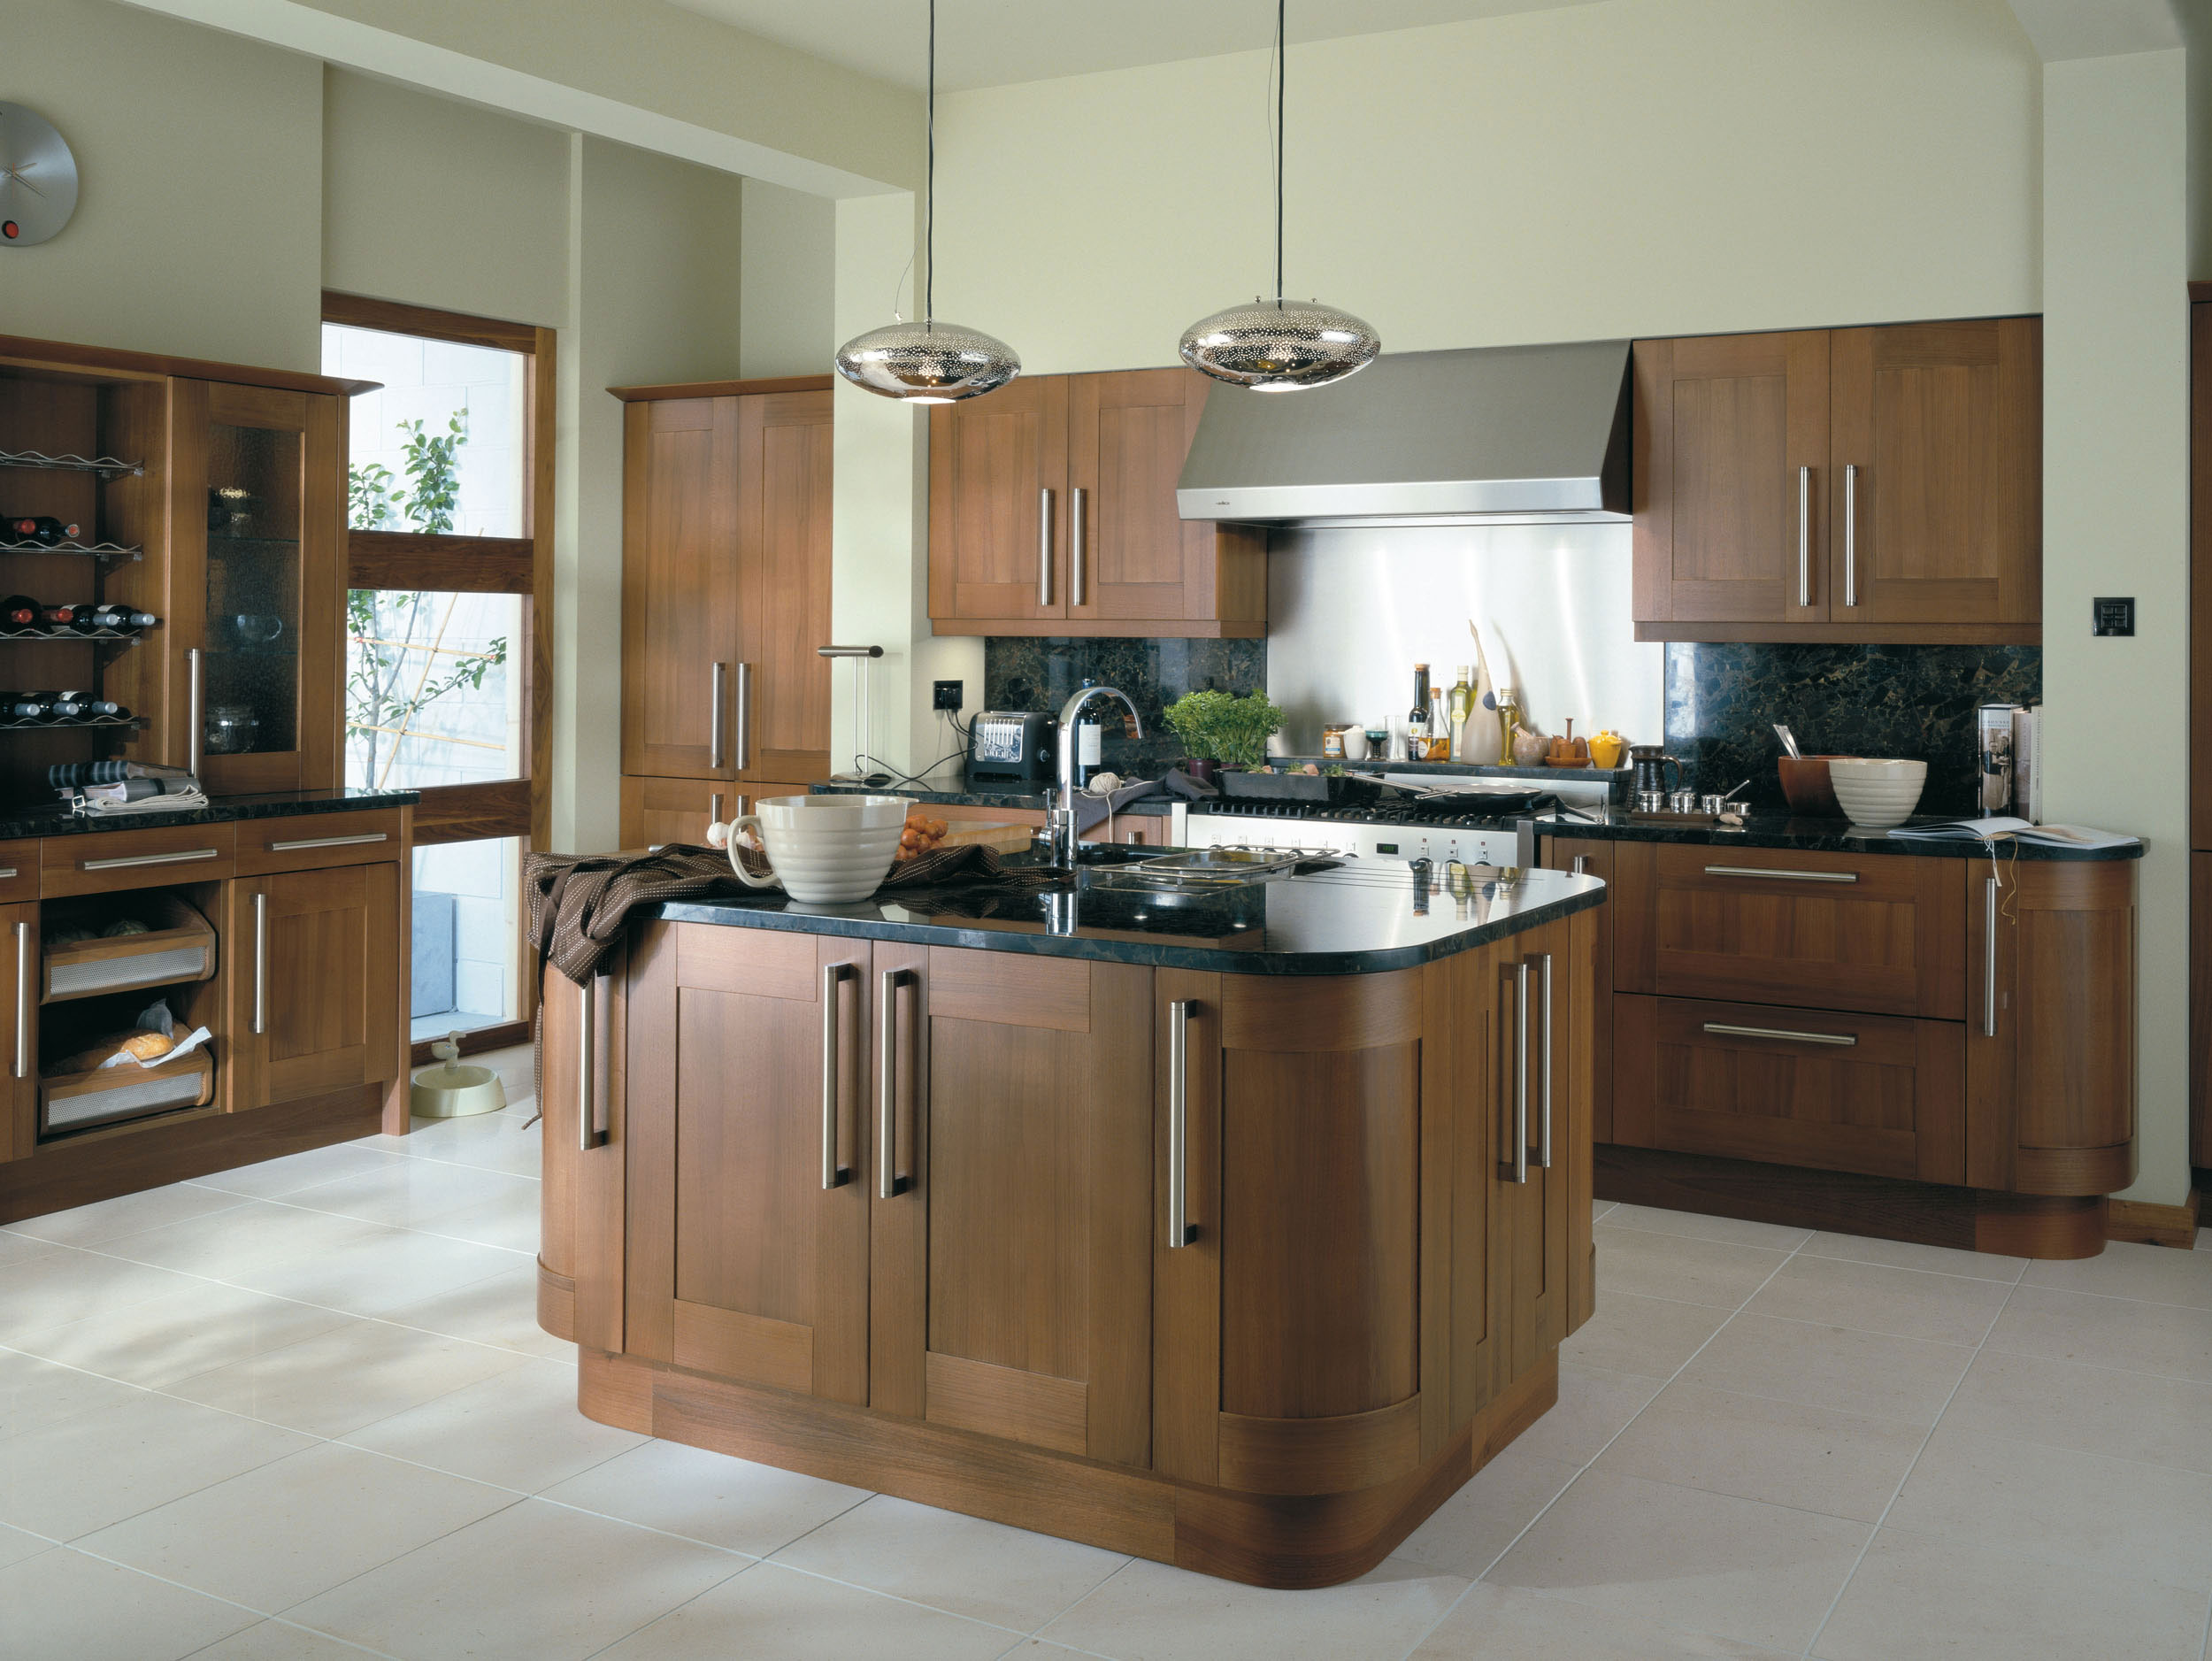 Estro walnut from eaton kitchen designs wolverhampton for Photos kitchen designs